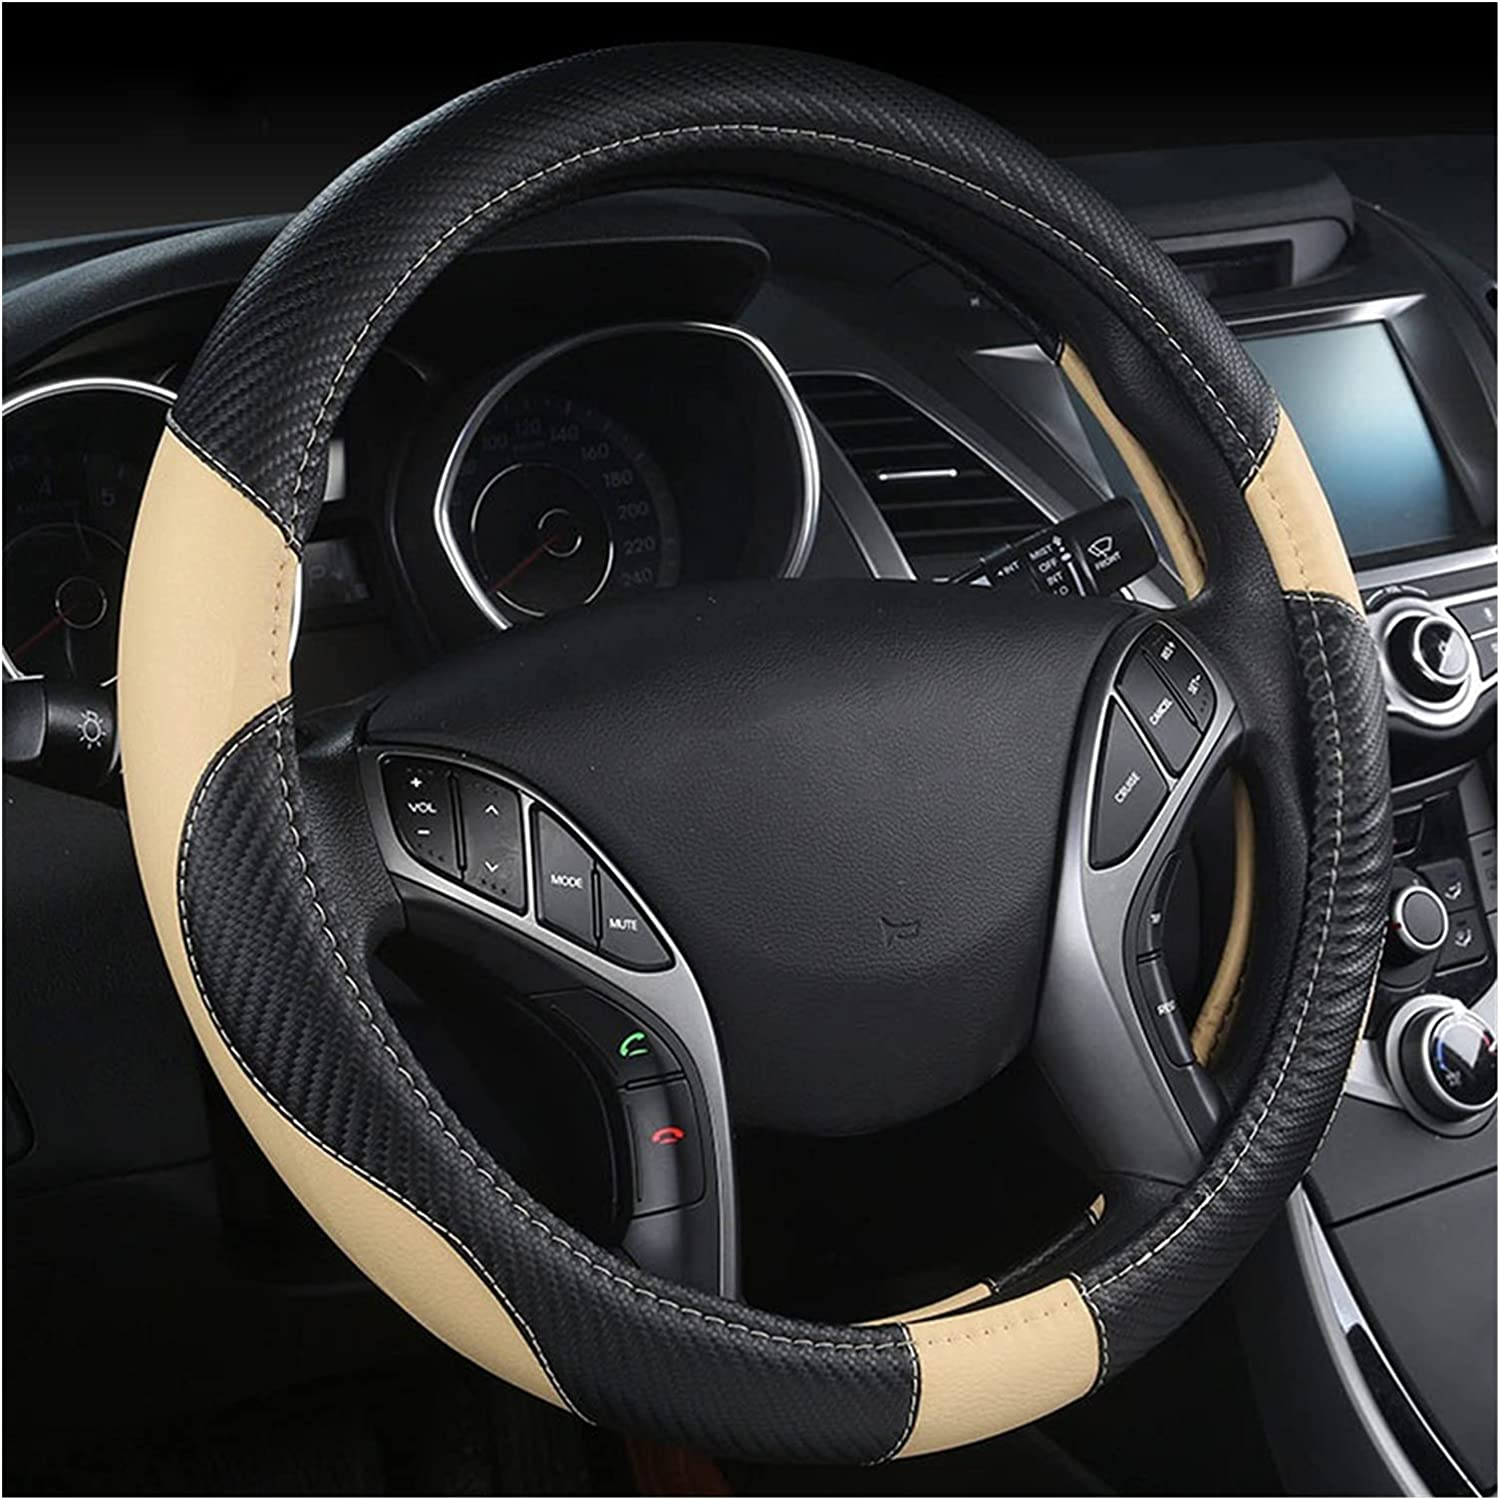 LCHY Bargain sale LWHYDZCPJXP Sales results No. 1 Car Steering Wheel Carbon 3 Fiber Cover Leather